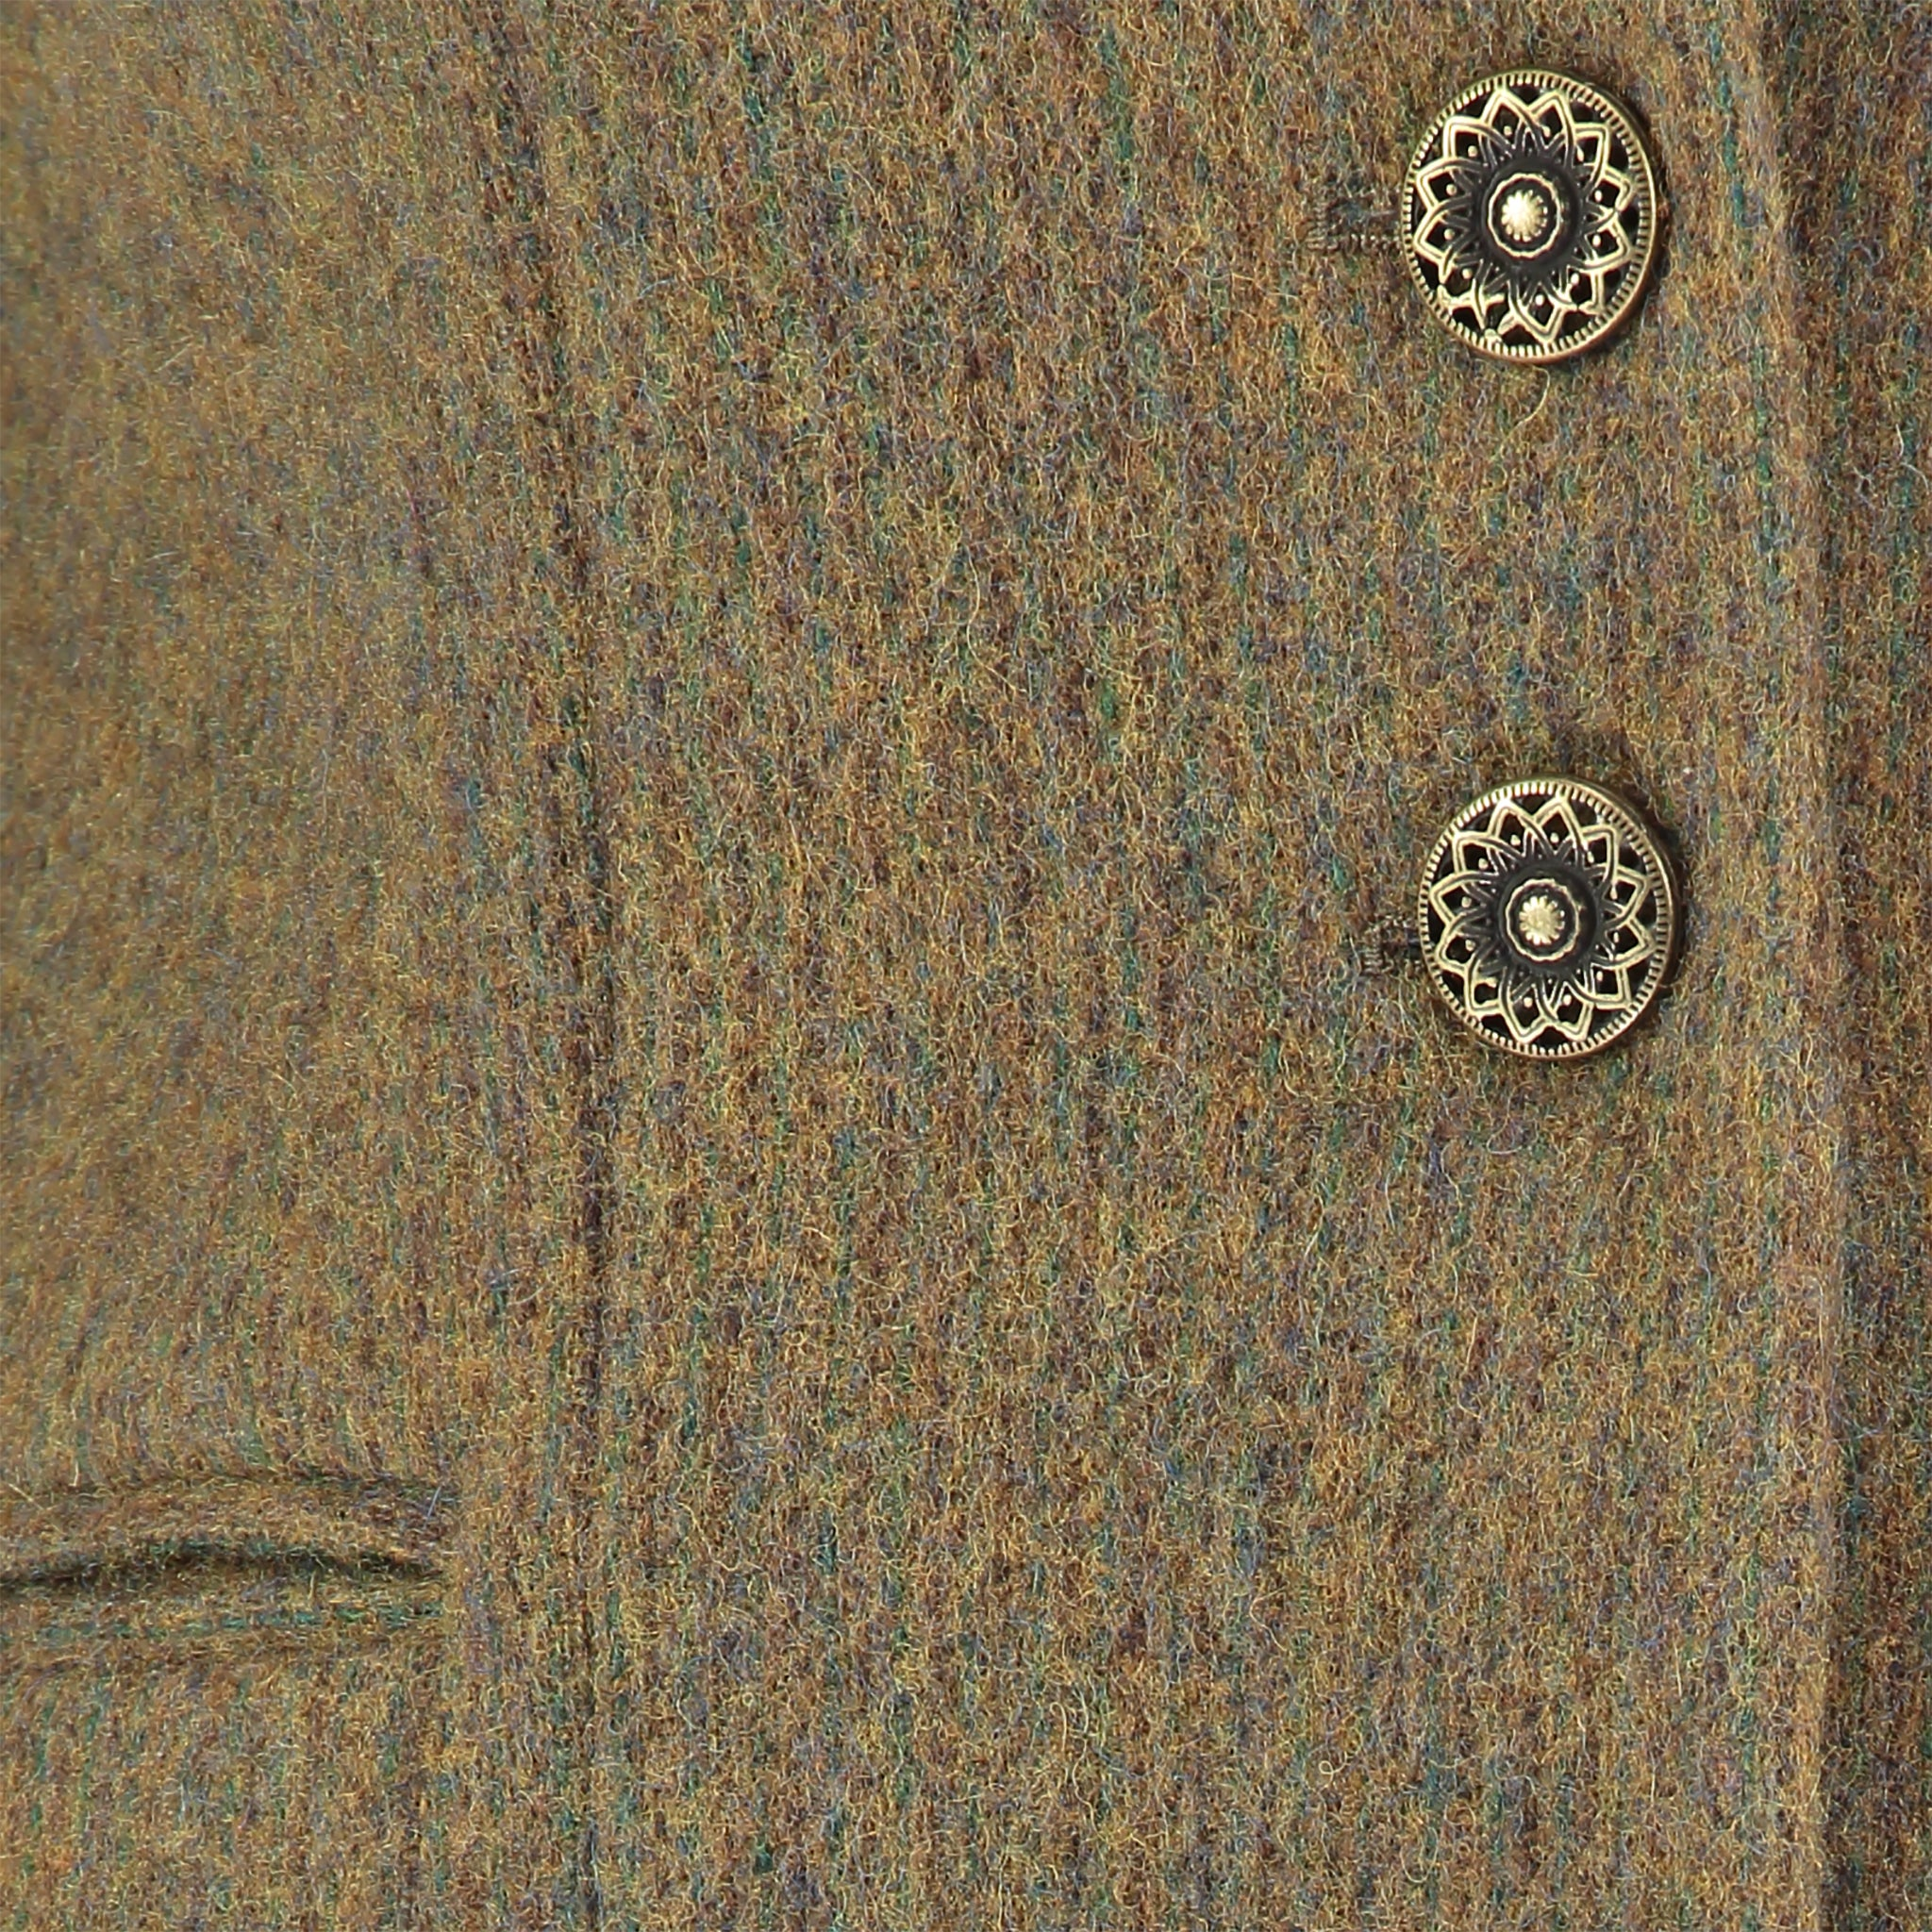 T.Ba Goa Tweed Jacket for Ladies in Goa Tweed